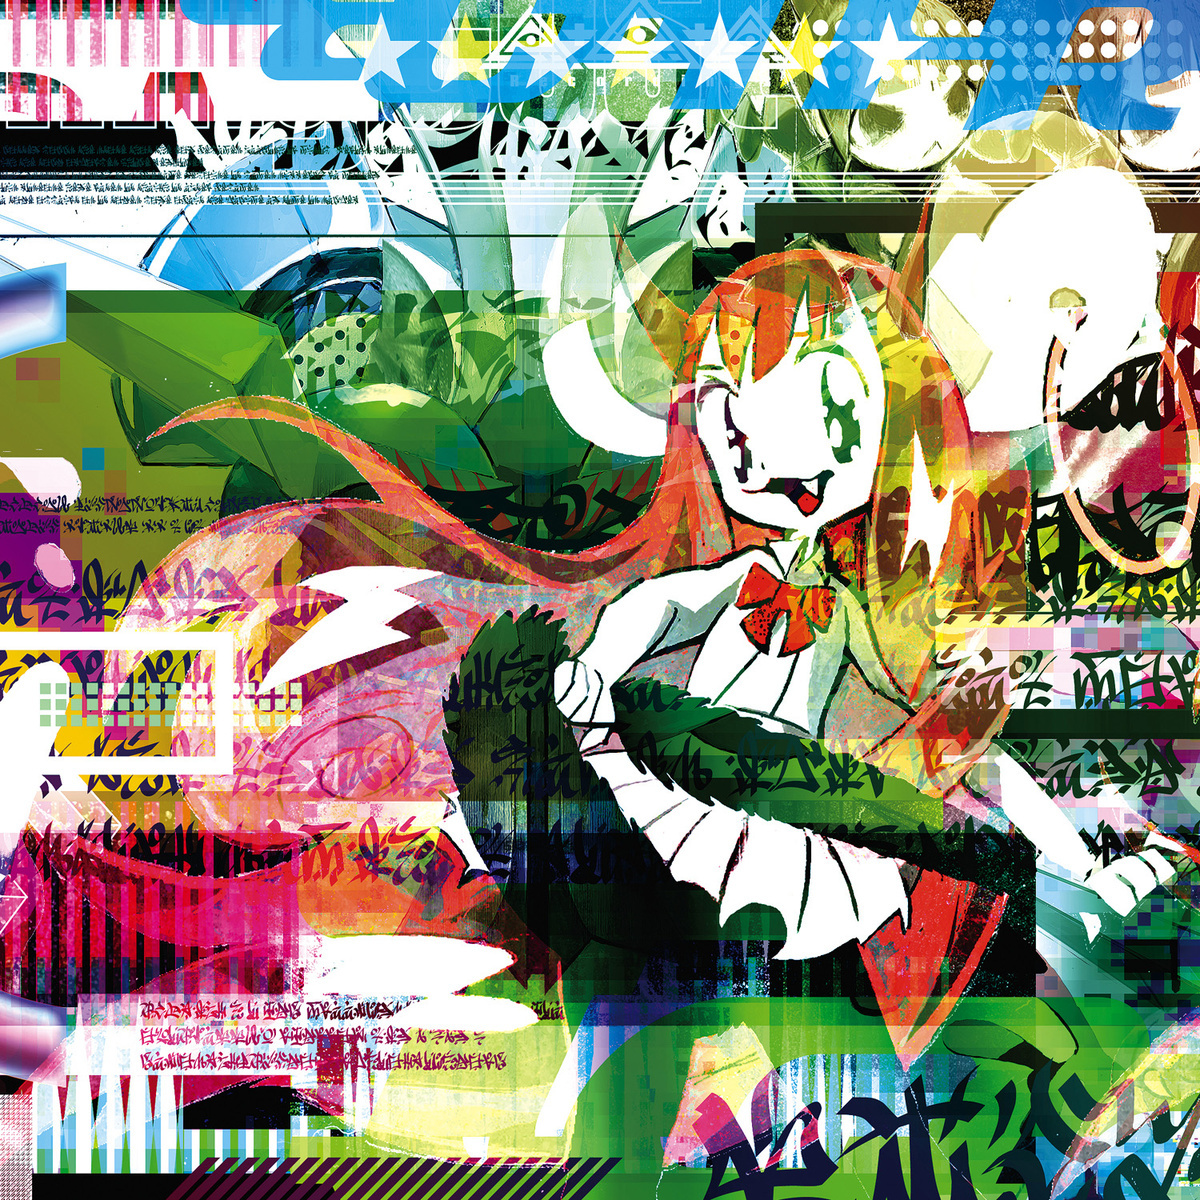 (MP3) 反復回転時計 〜RUNNING COST〜 - DJ TECHNORCH [TCNCD006]